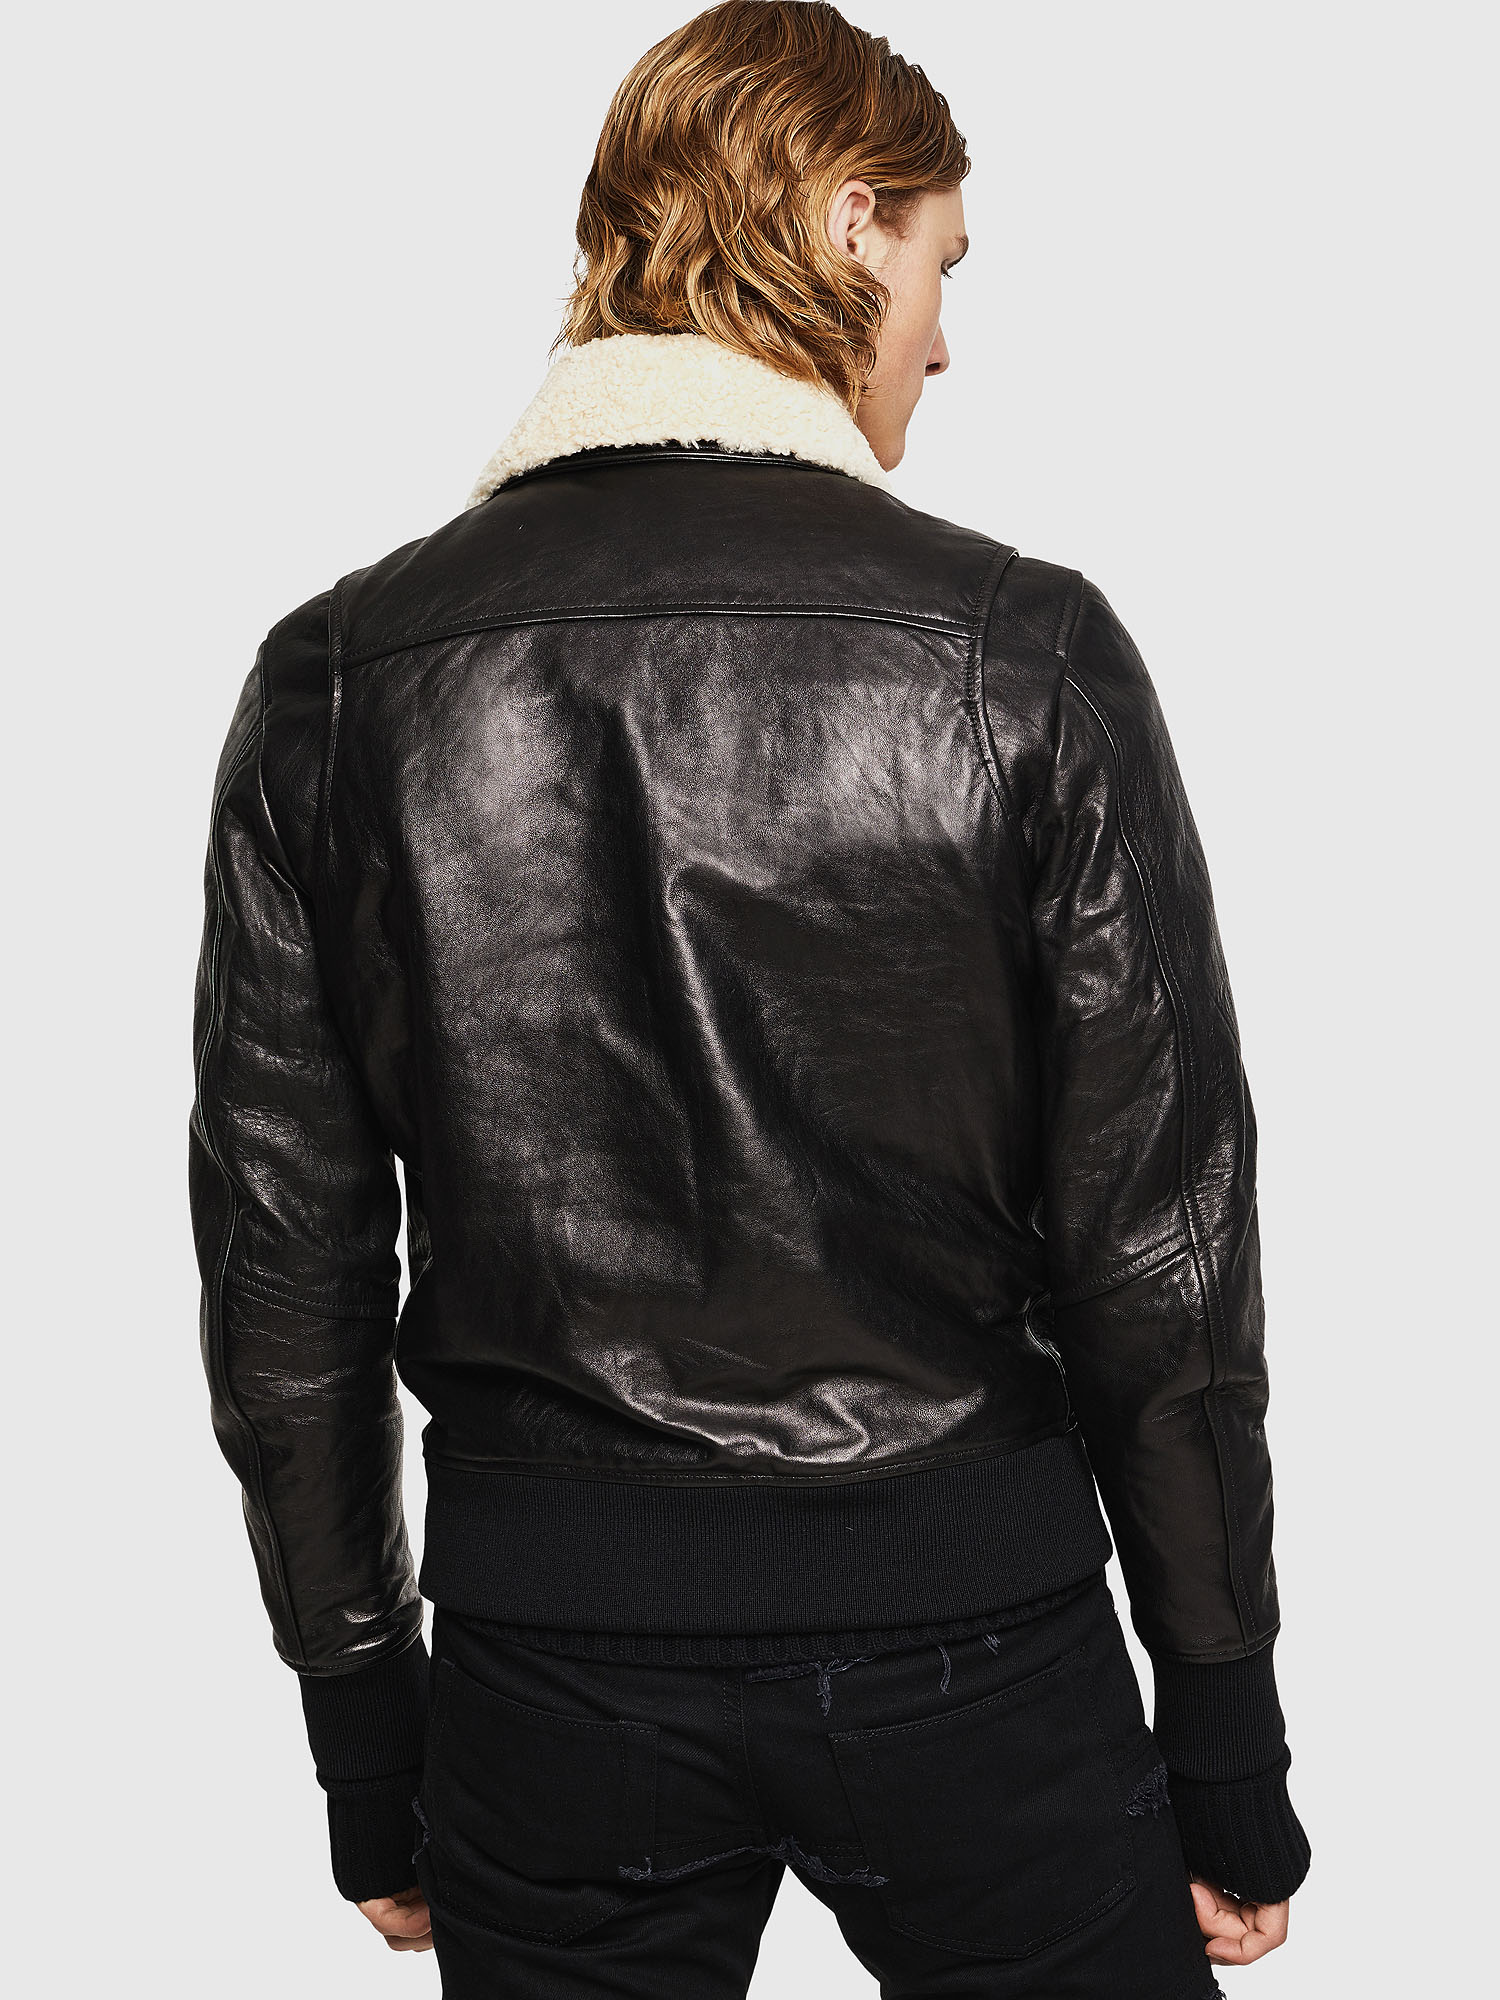 Diesel - L-VINT,  - Leather jackets - Image 2